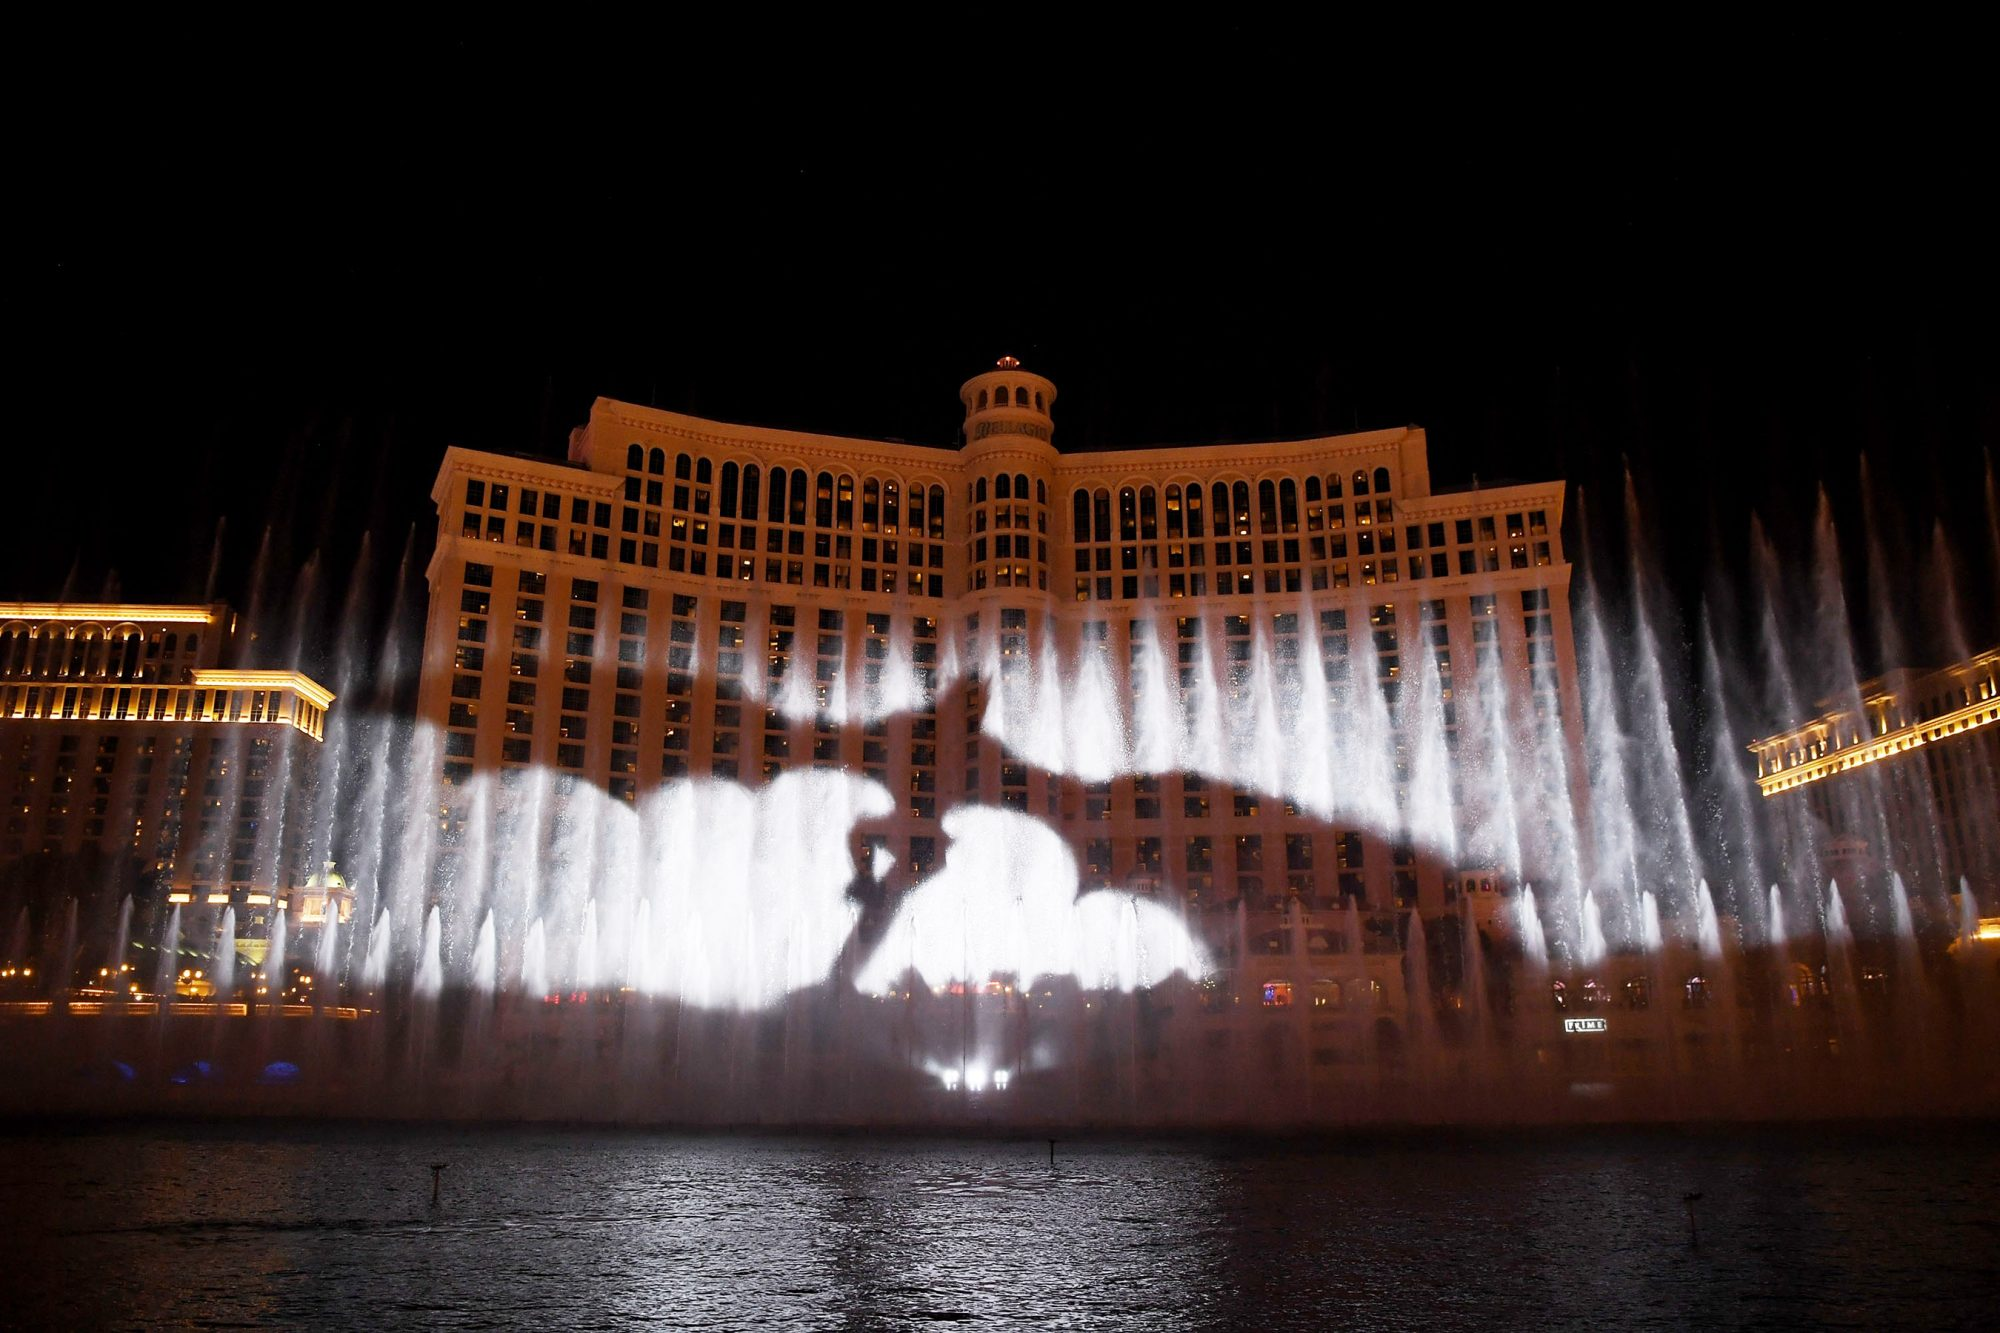 HBO, MGM Resorts And WET Design Debut Exclusive Game Of Thrones Production On The Fountains Of Bellagio Through April 13